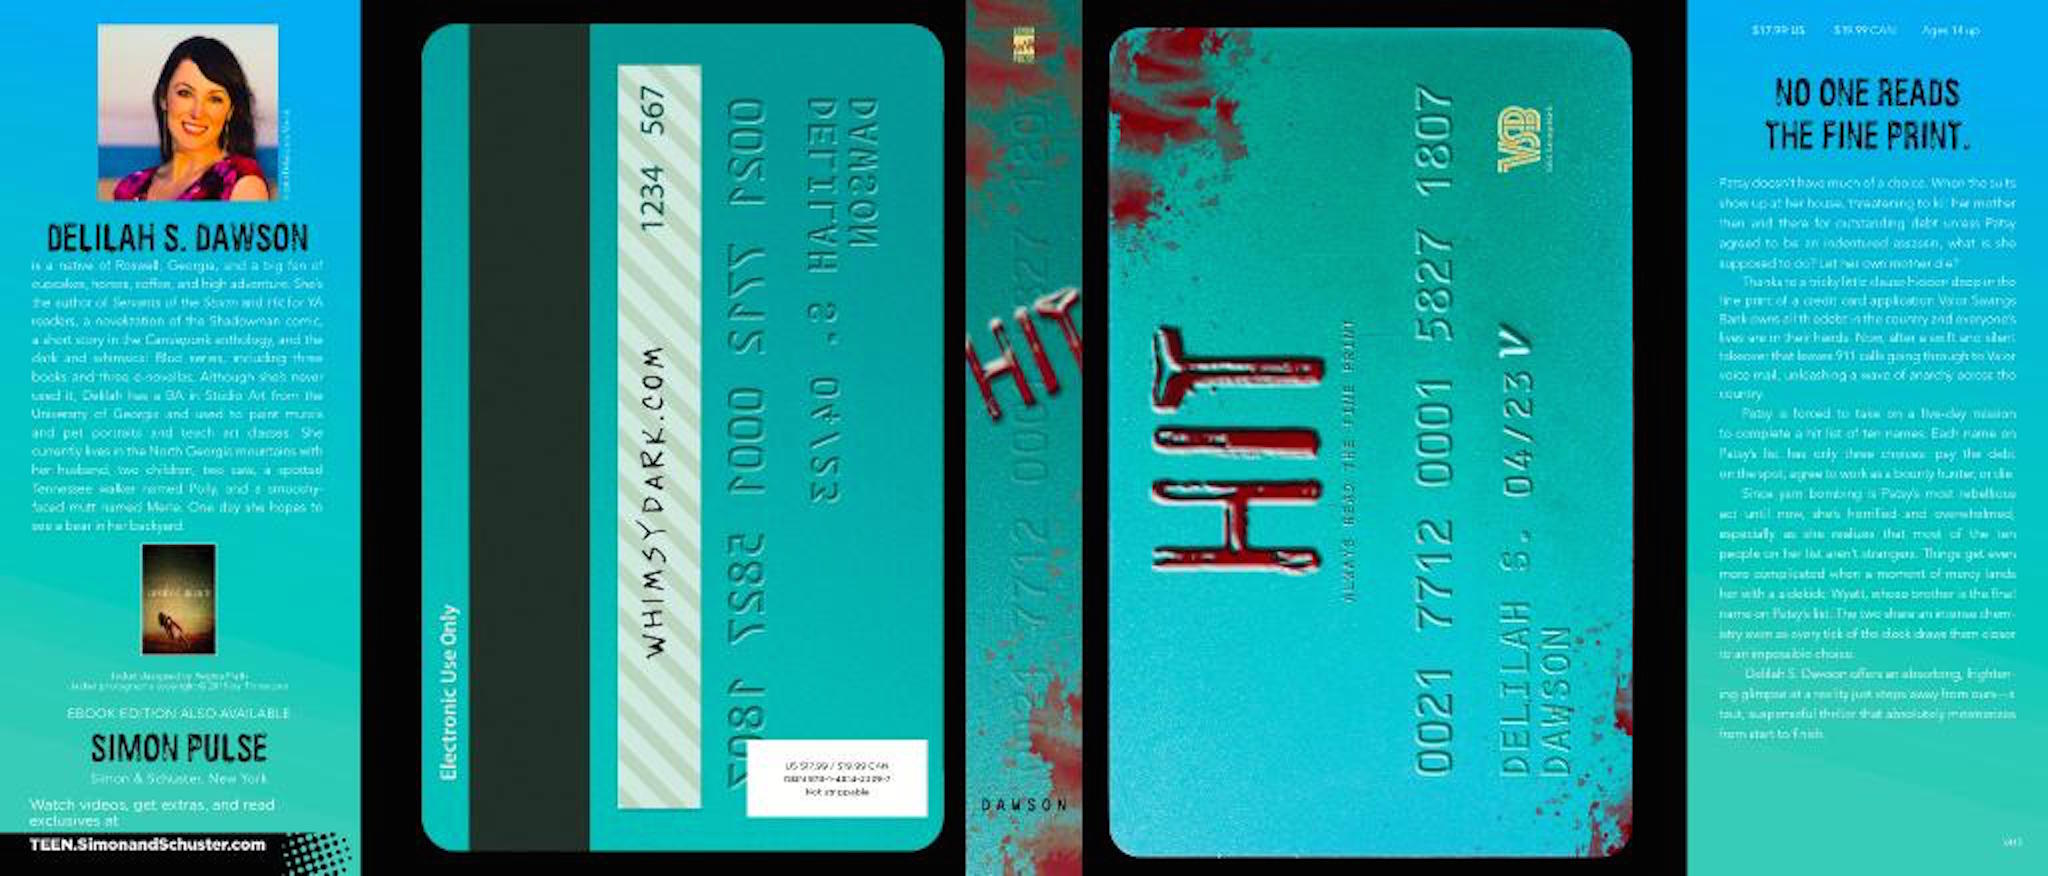 Book Review: 'HIT' by Delilah S. Dawson